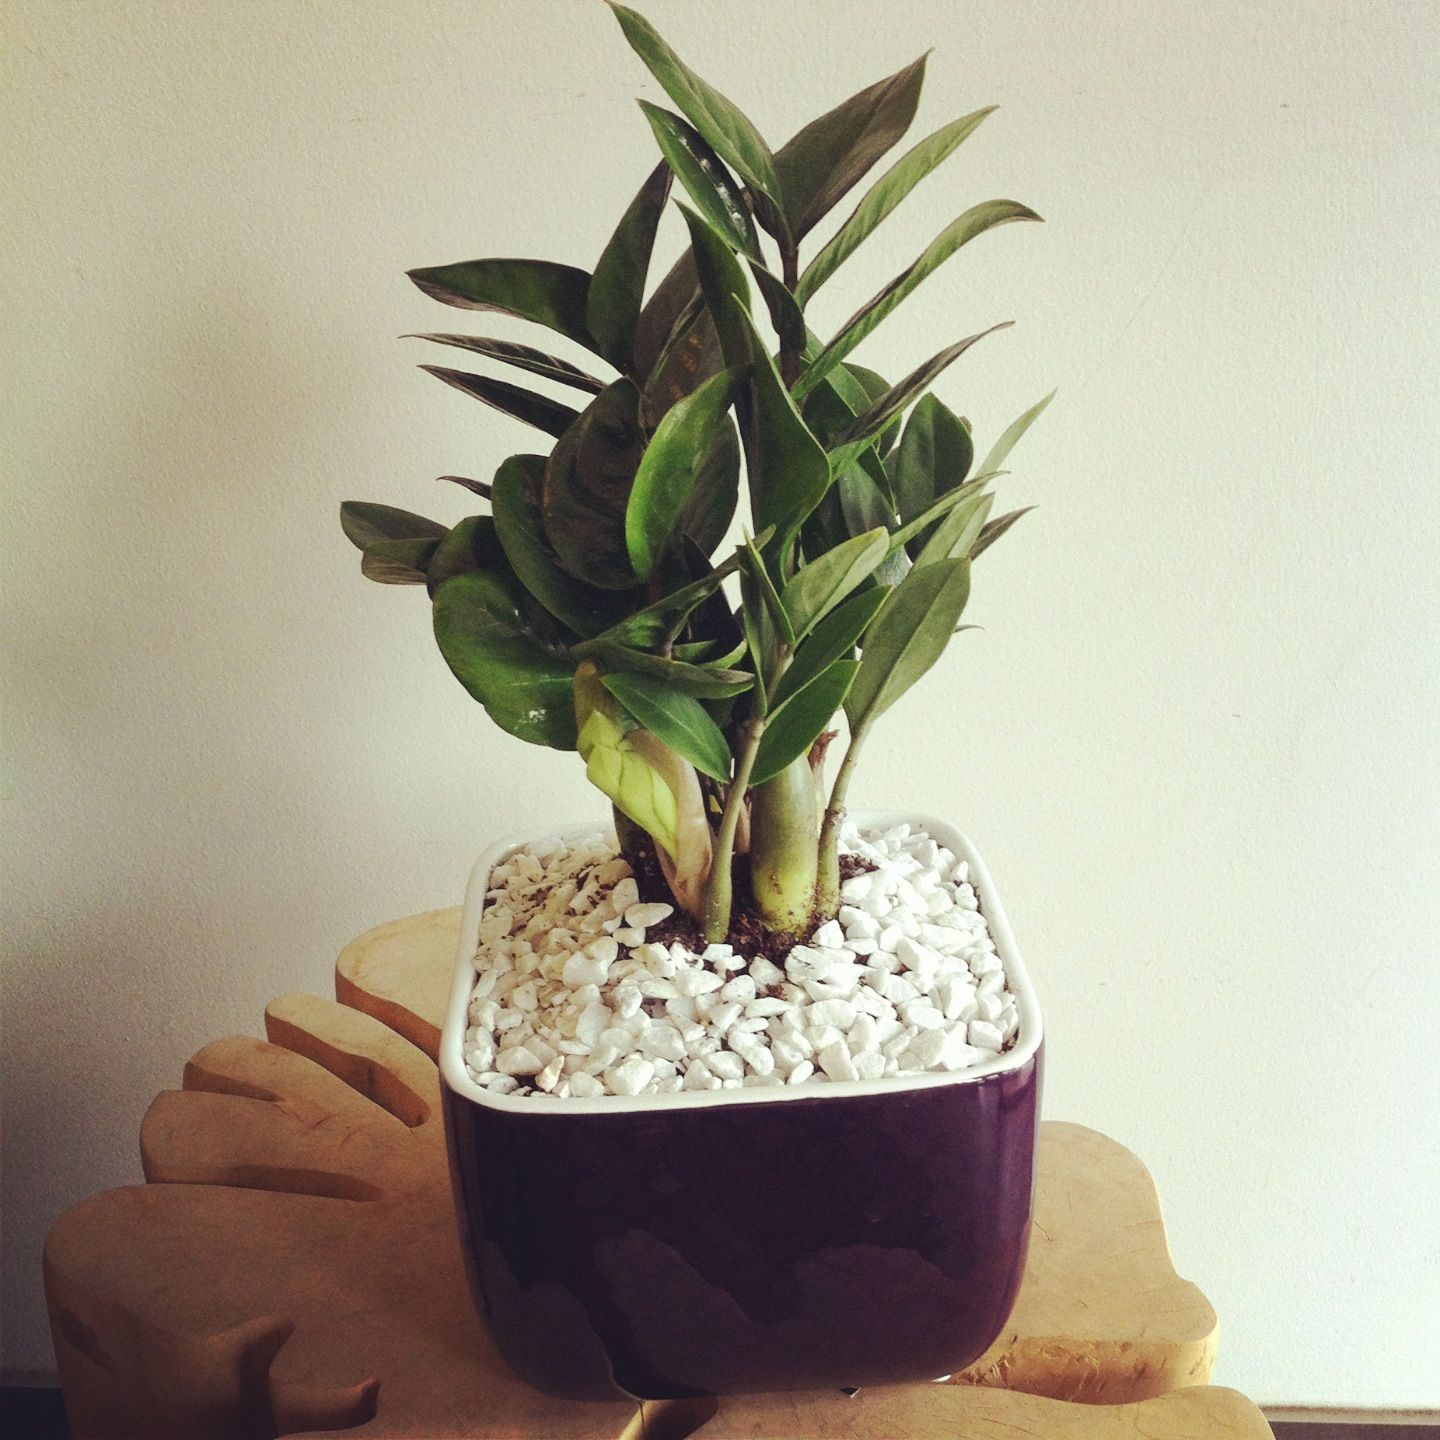 Small House Plants With Flowers Zz Plant In Small Pot Plants Plants Zz Plant House Plants